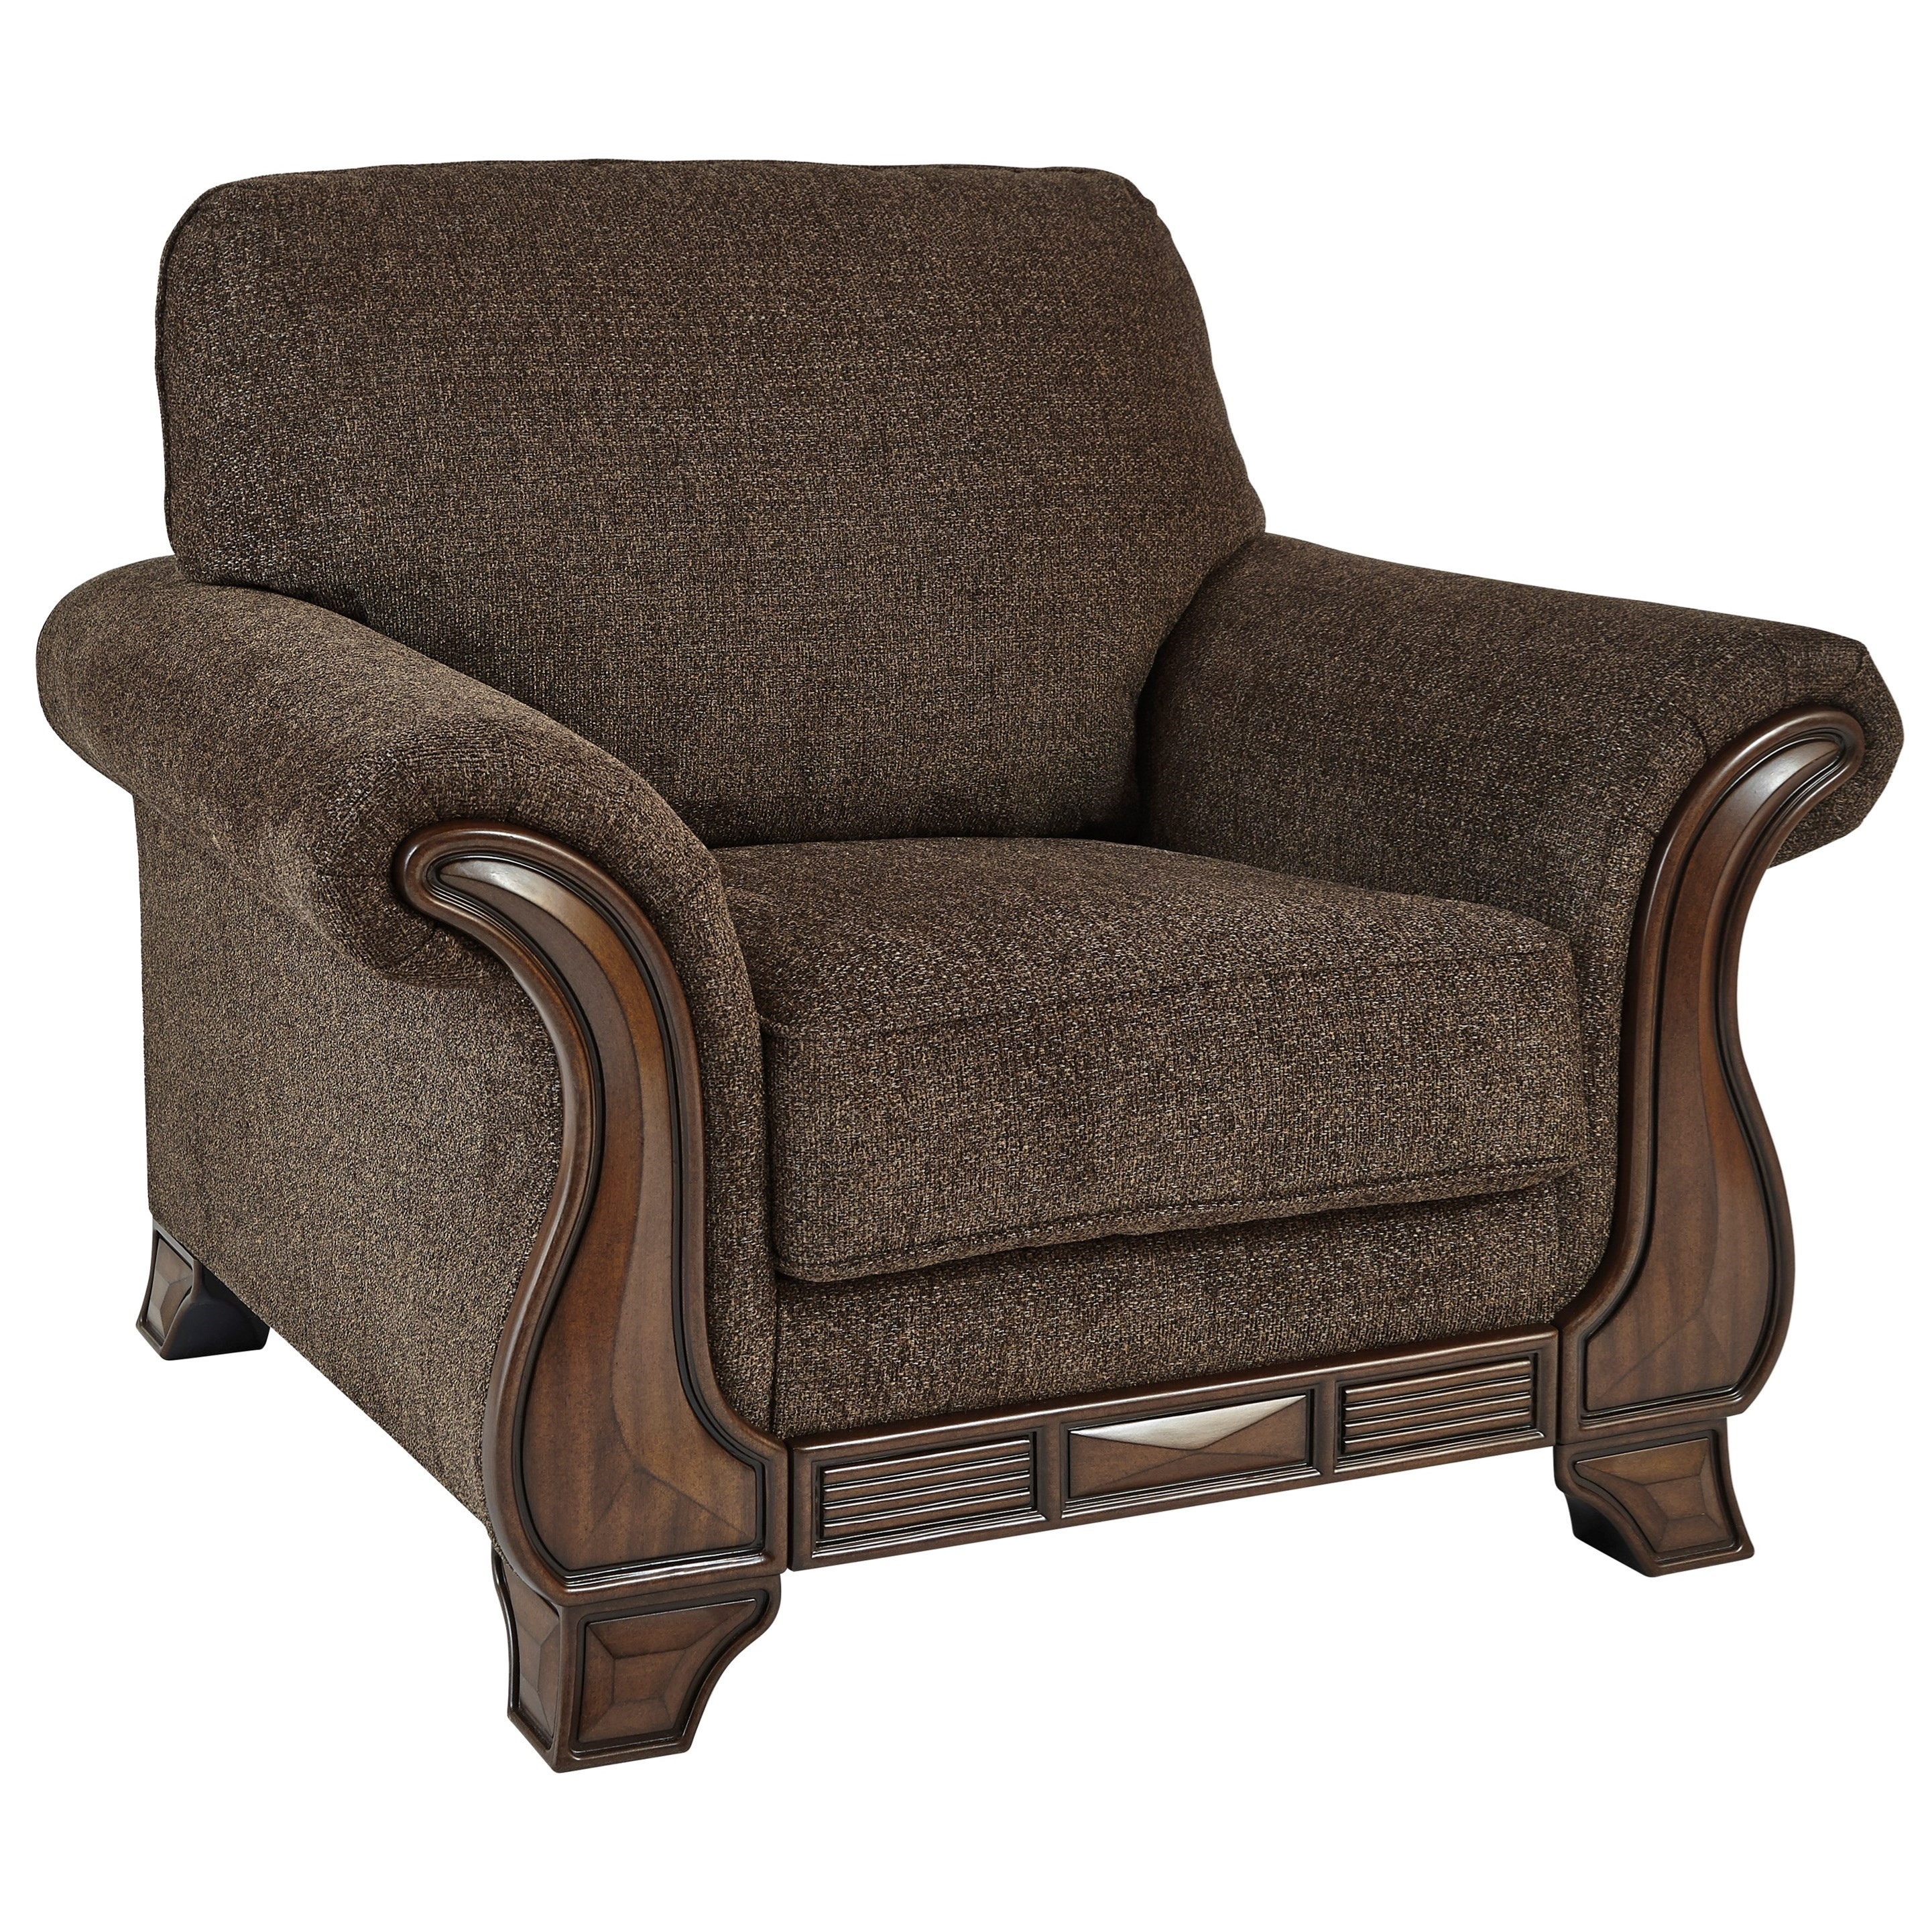 Miltonwood Chair by Benchcraft at Walker's Furniture